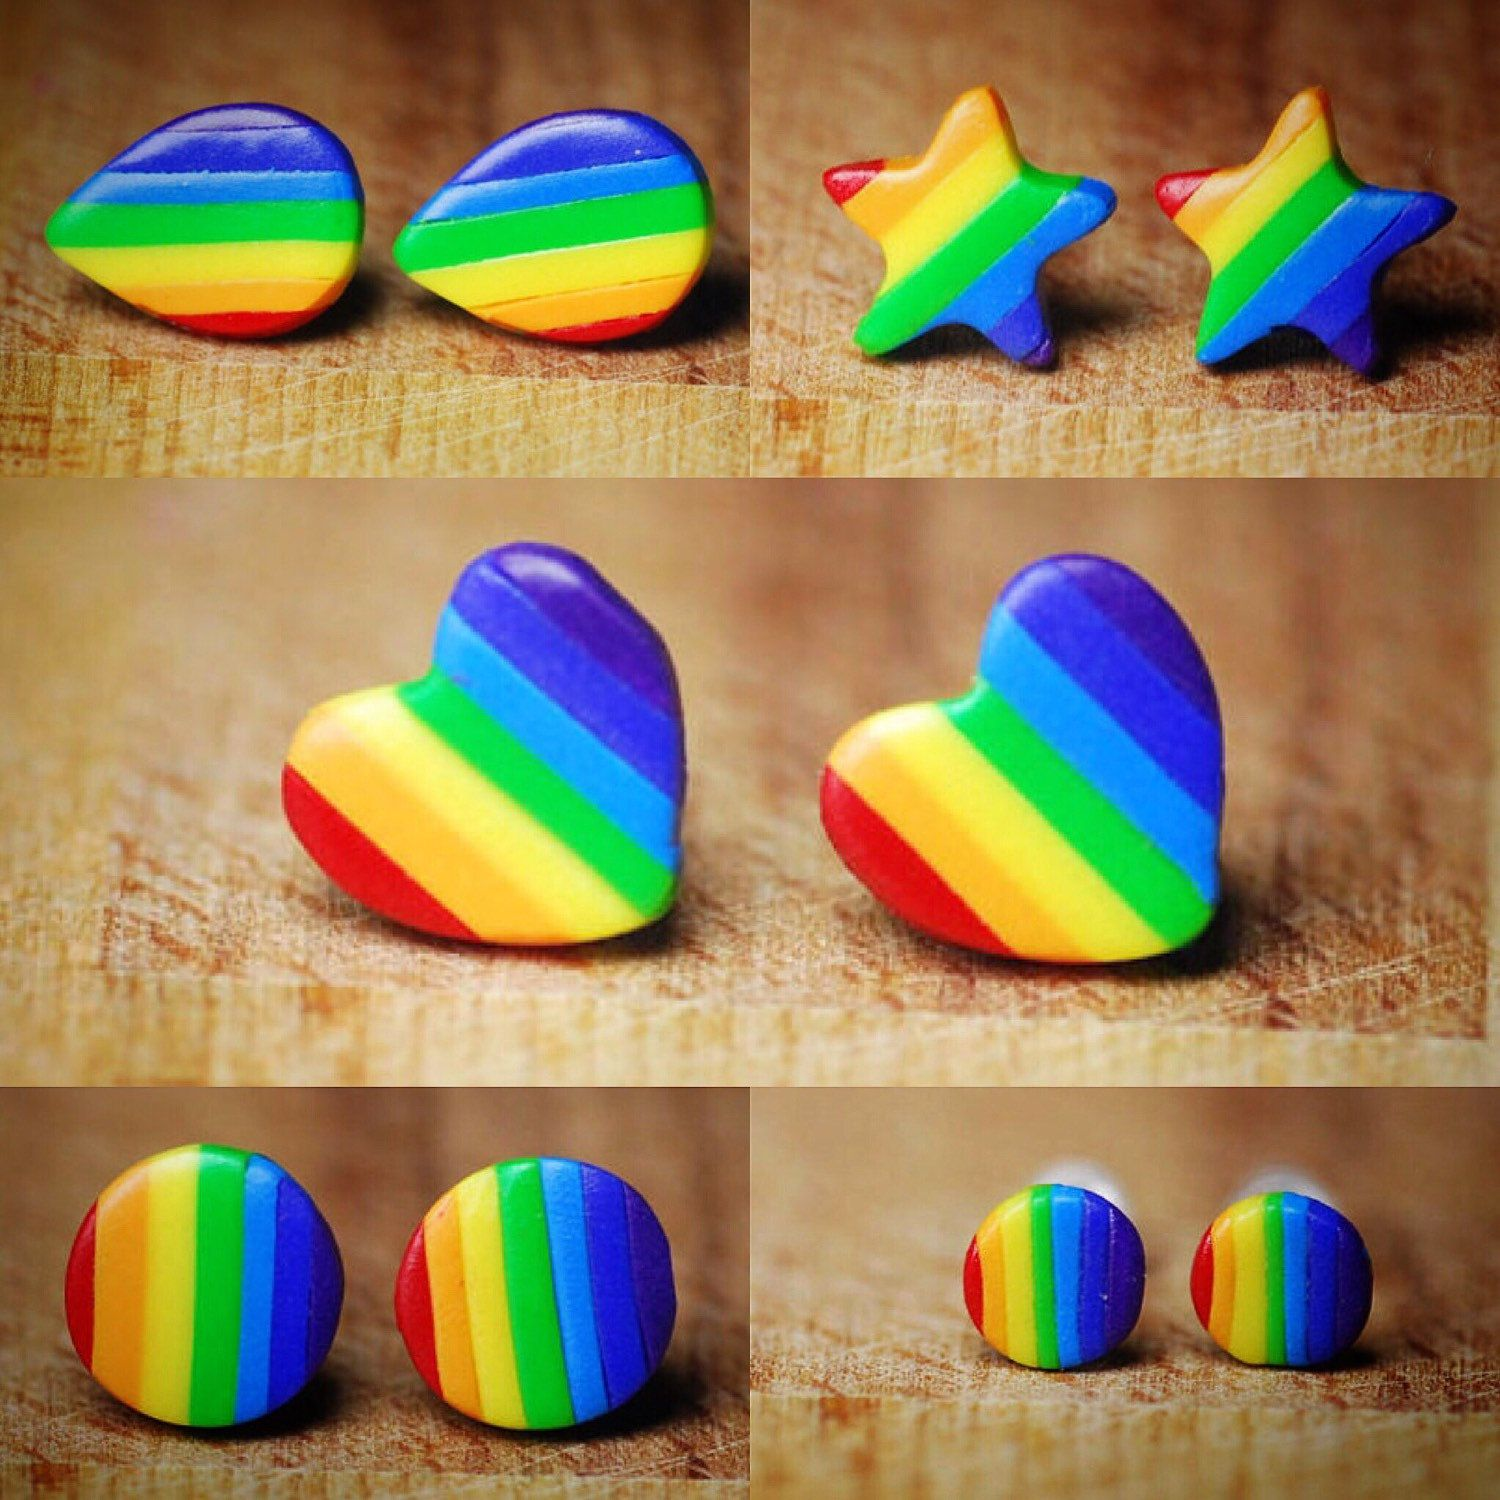 Our rainbow studs are so colourful and cheerful!